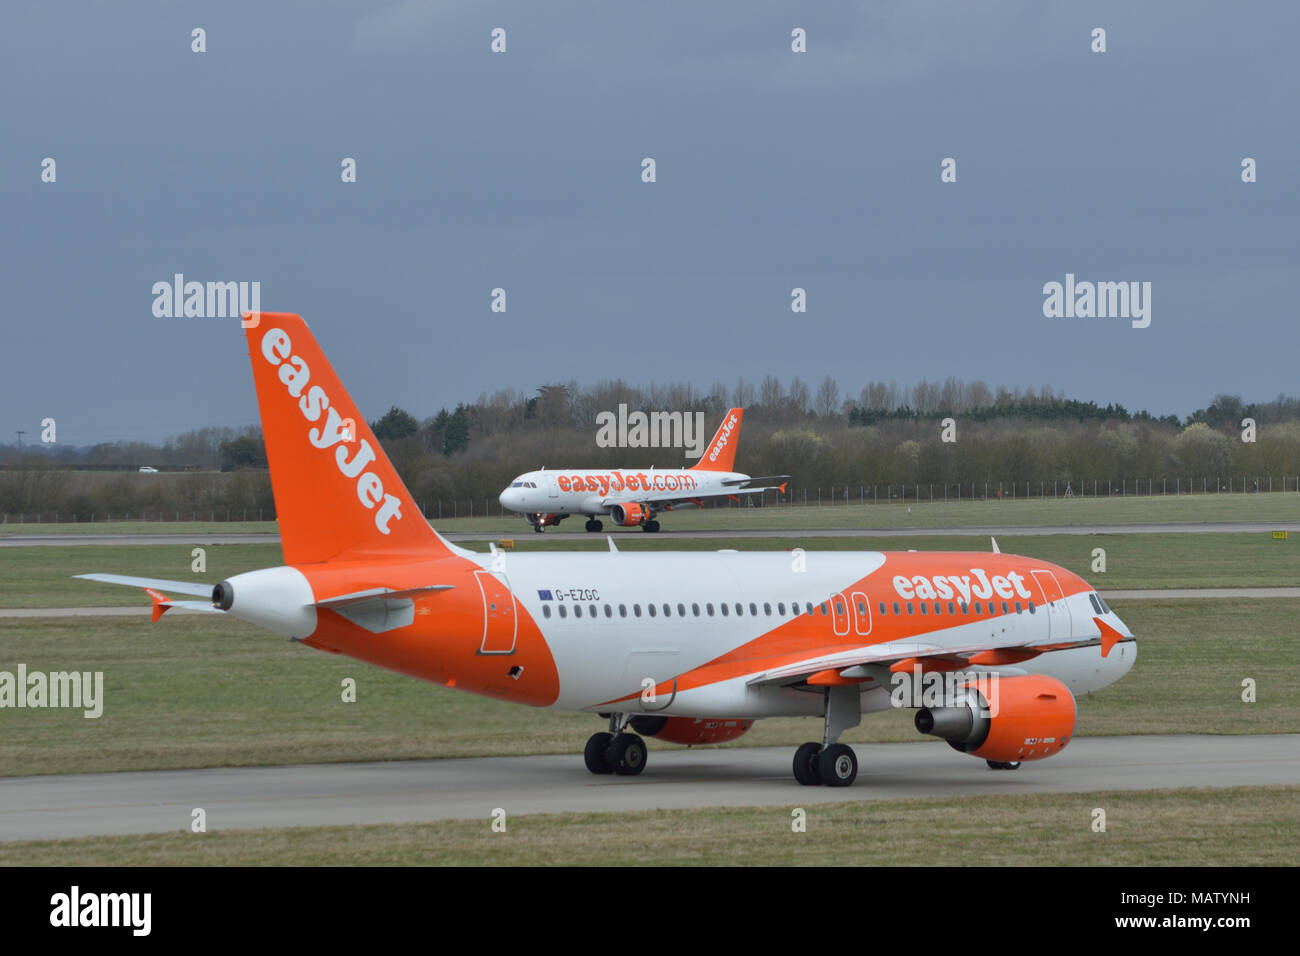 Easyjet aircraft taxiing at London Stansted Airport - Stock Image